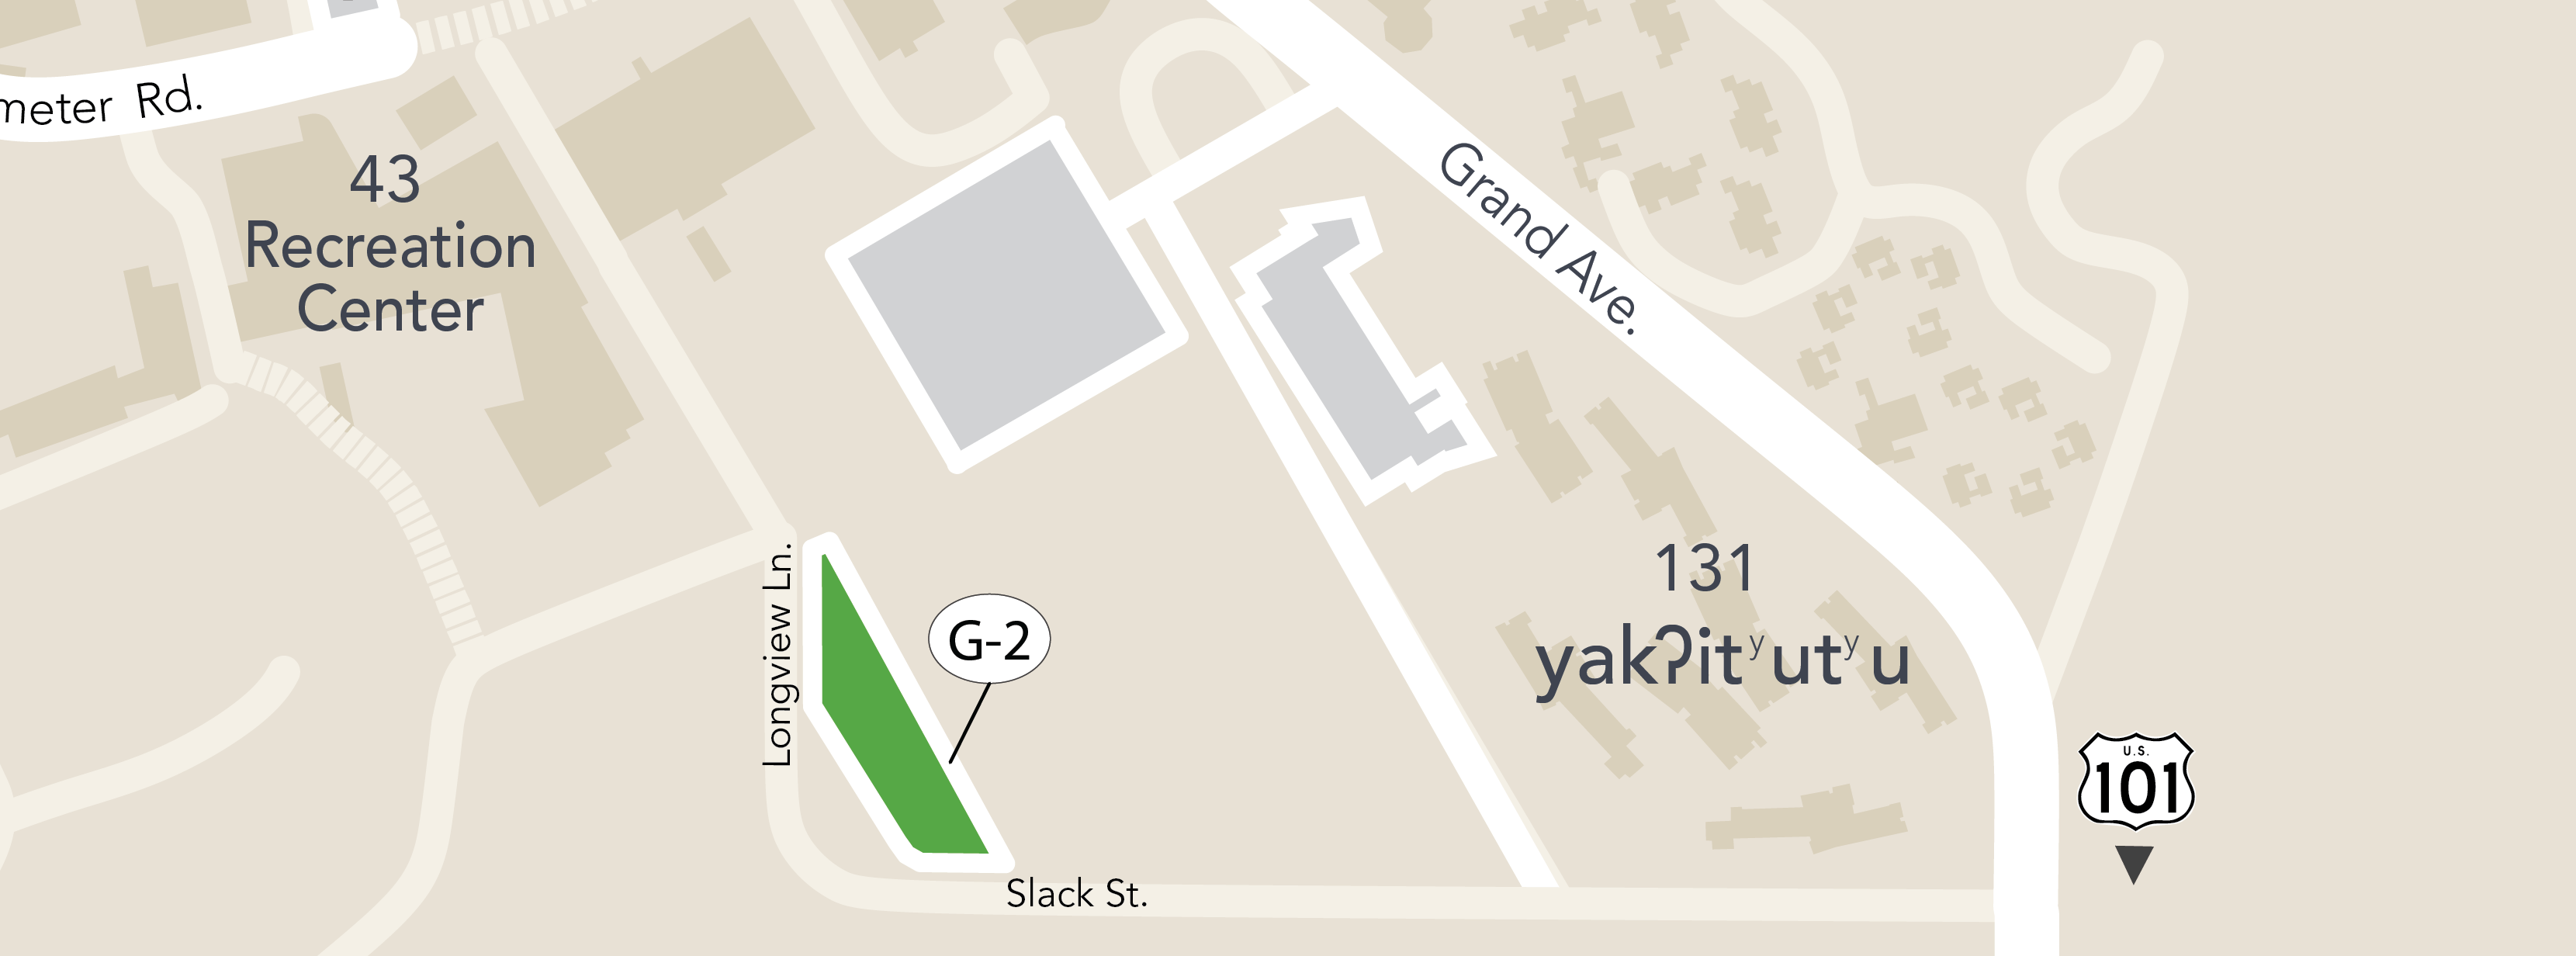 Map of parking structures on the Cal Poly campus.